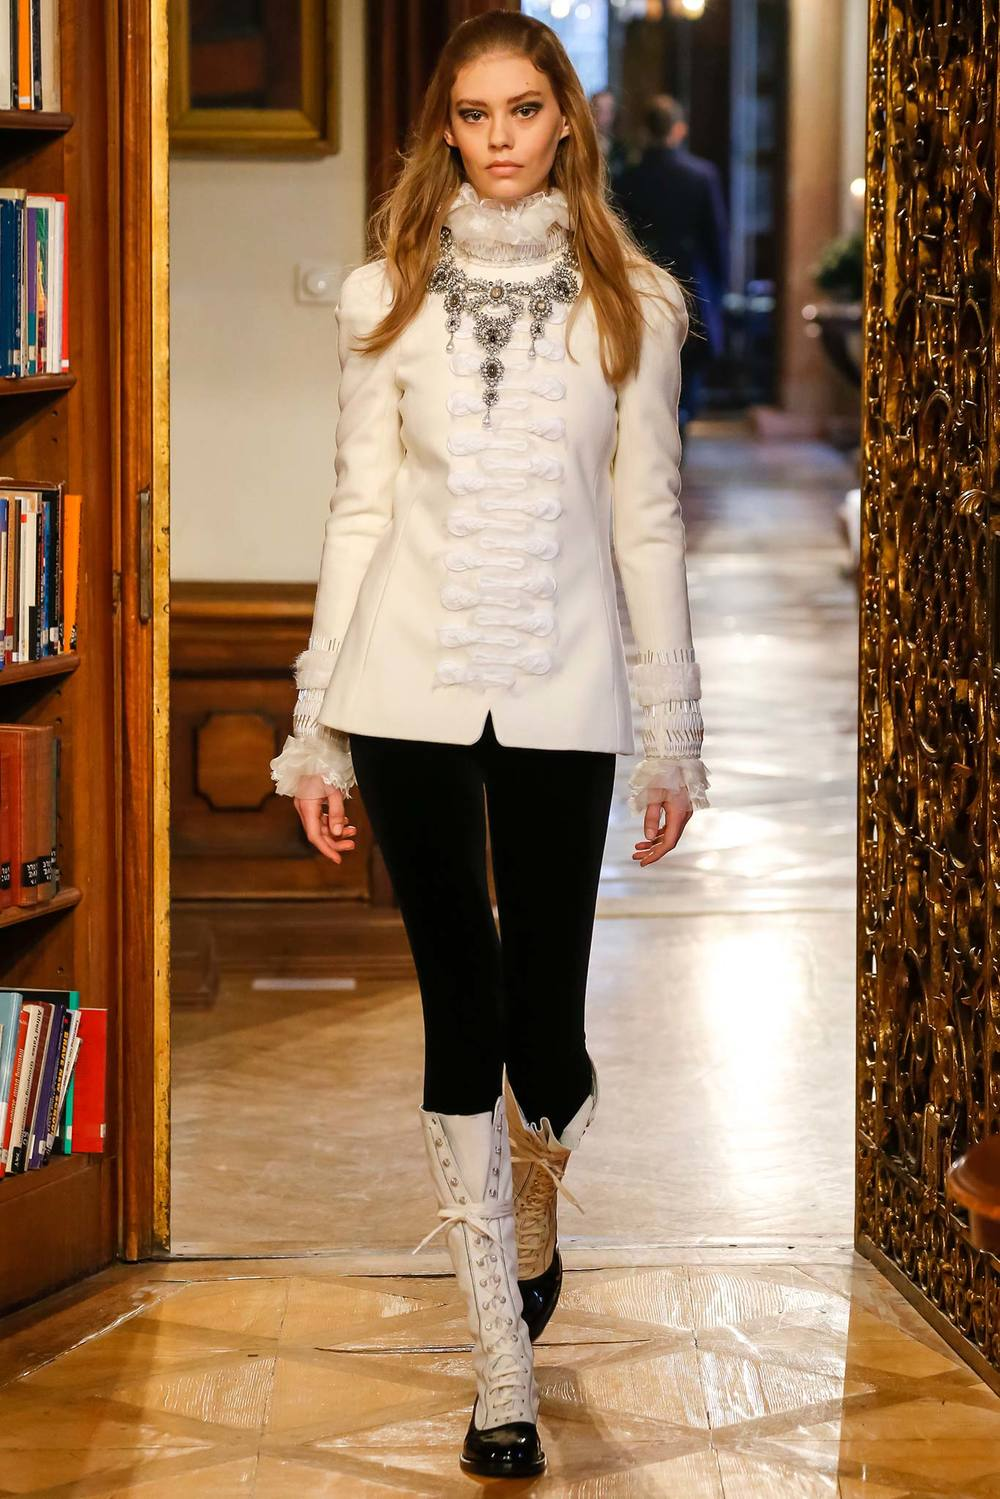 Love the laid back yet glam vibe. Leggings, statement boots and jacket - I can do that. Image courtesy of Style.com.